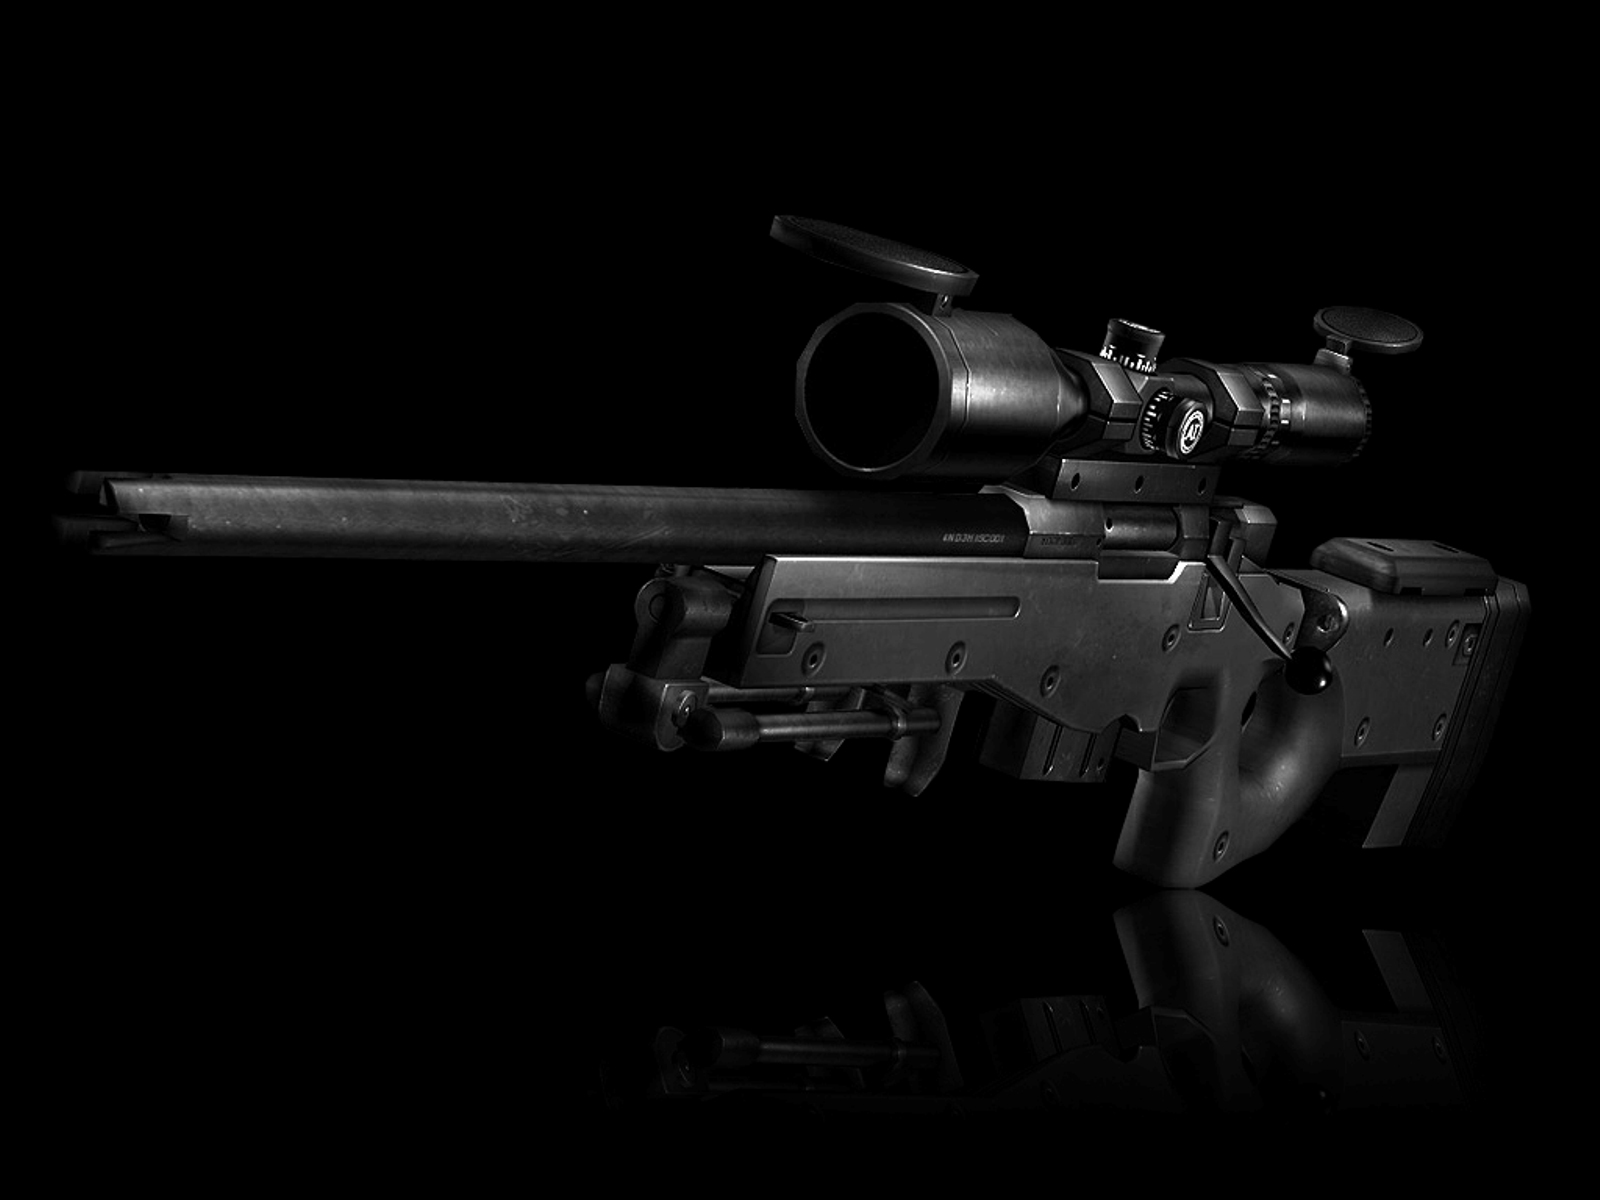 49 Sniper Rifle HD Wallpapers Background Images